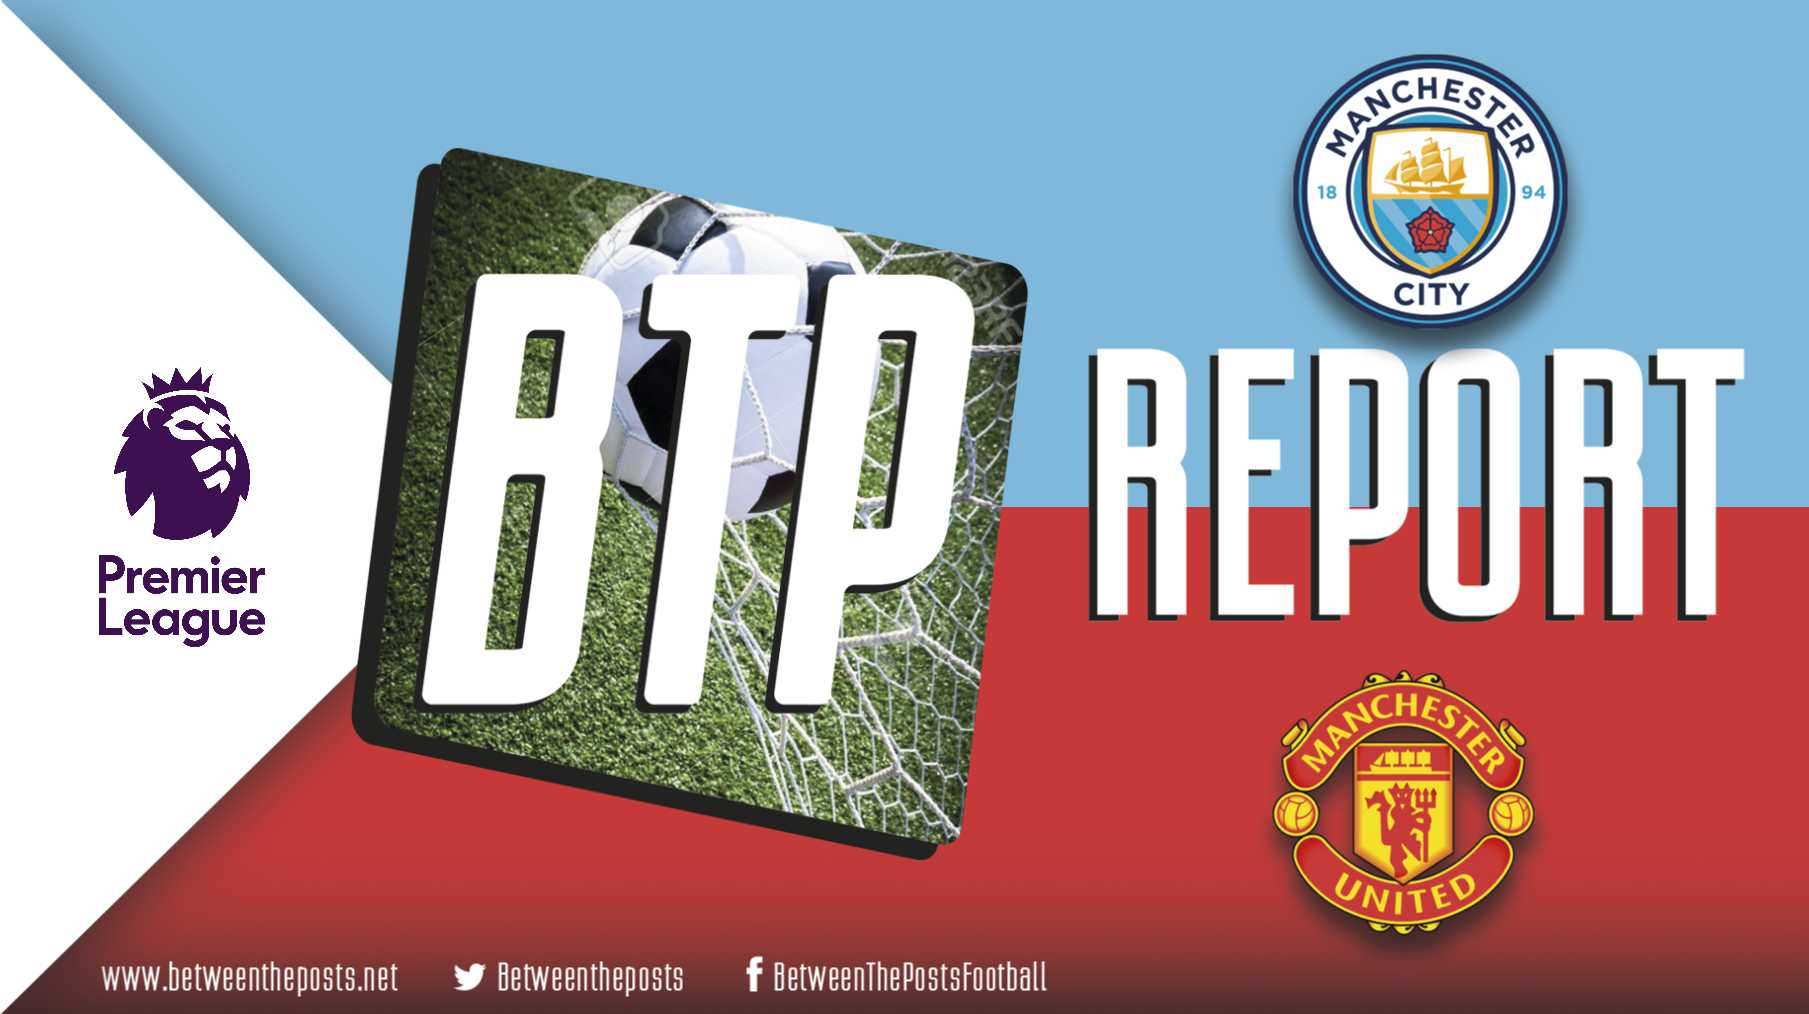 tactical analysis Manchester City - Manchester United 3-1